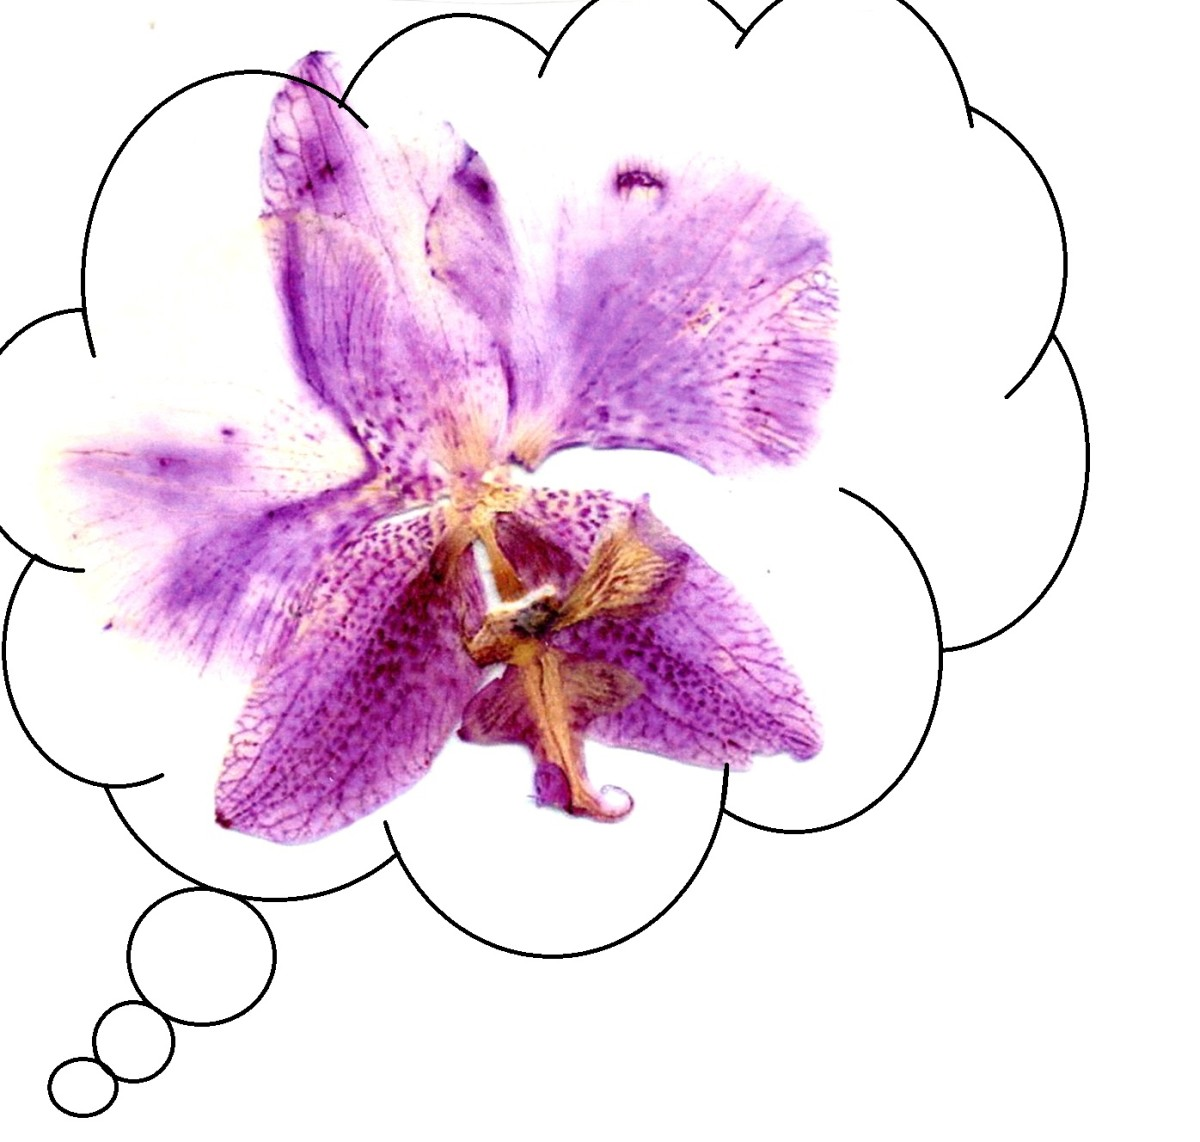 The Orchid - Week 4 for Project Good Thoughts